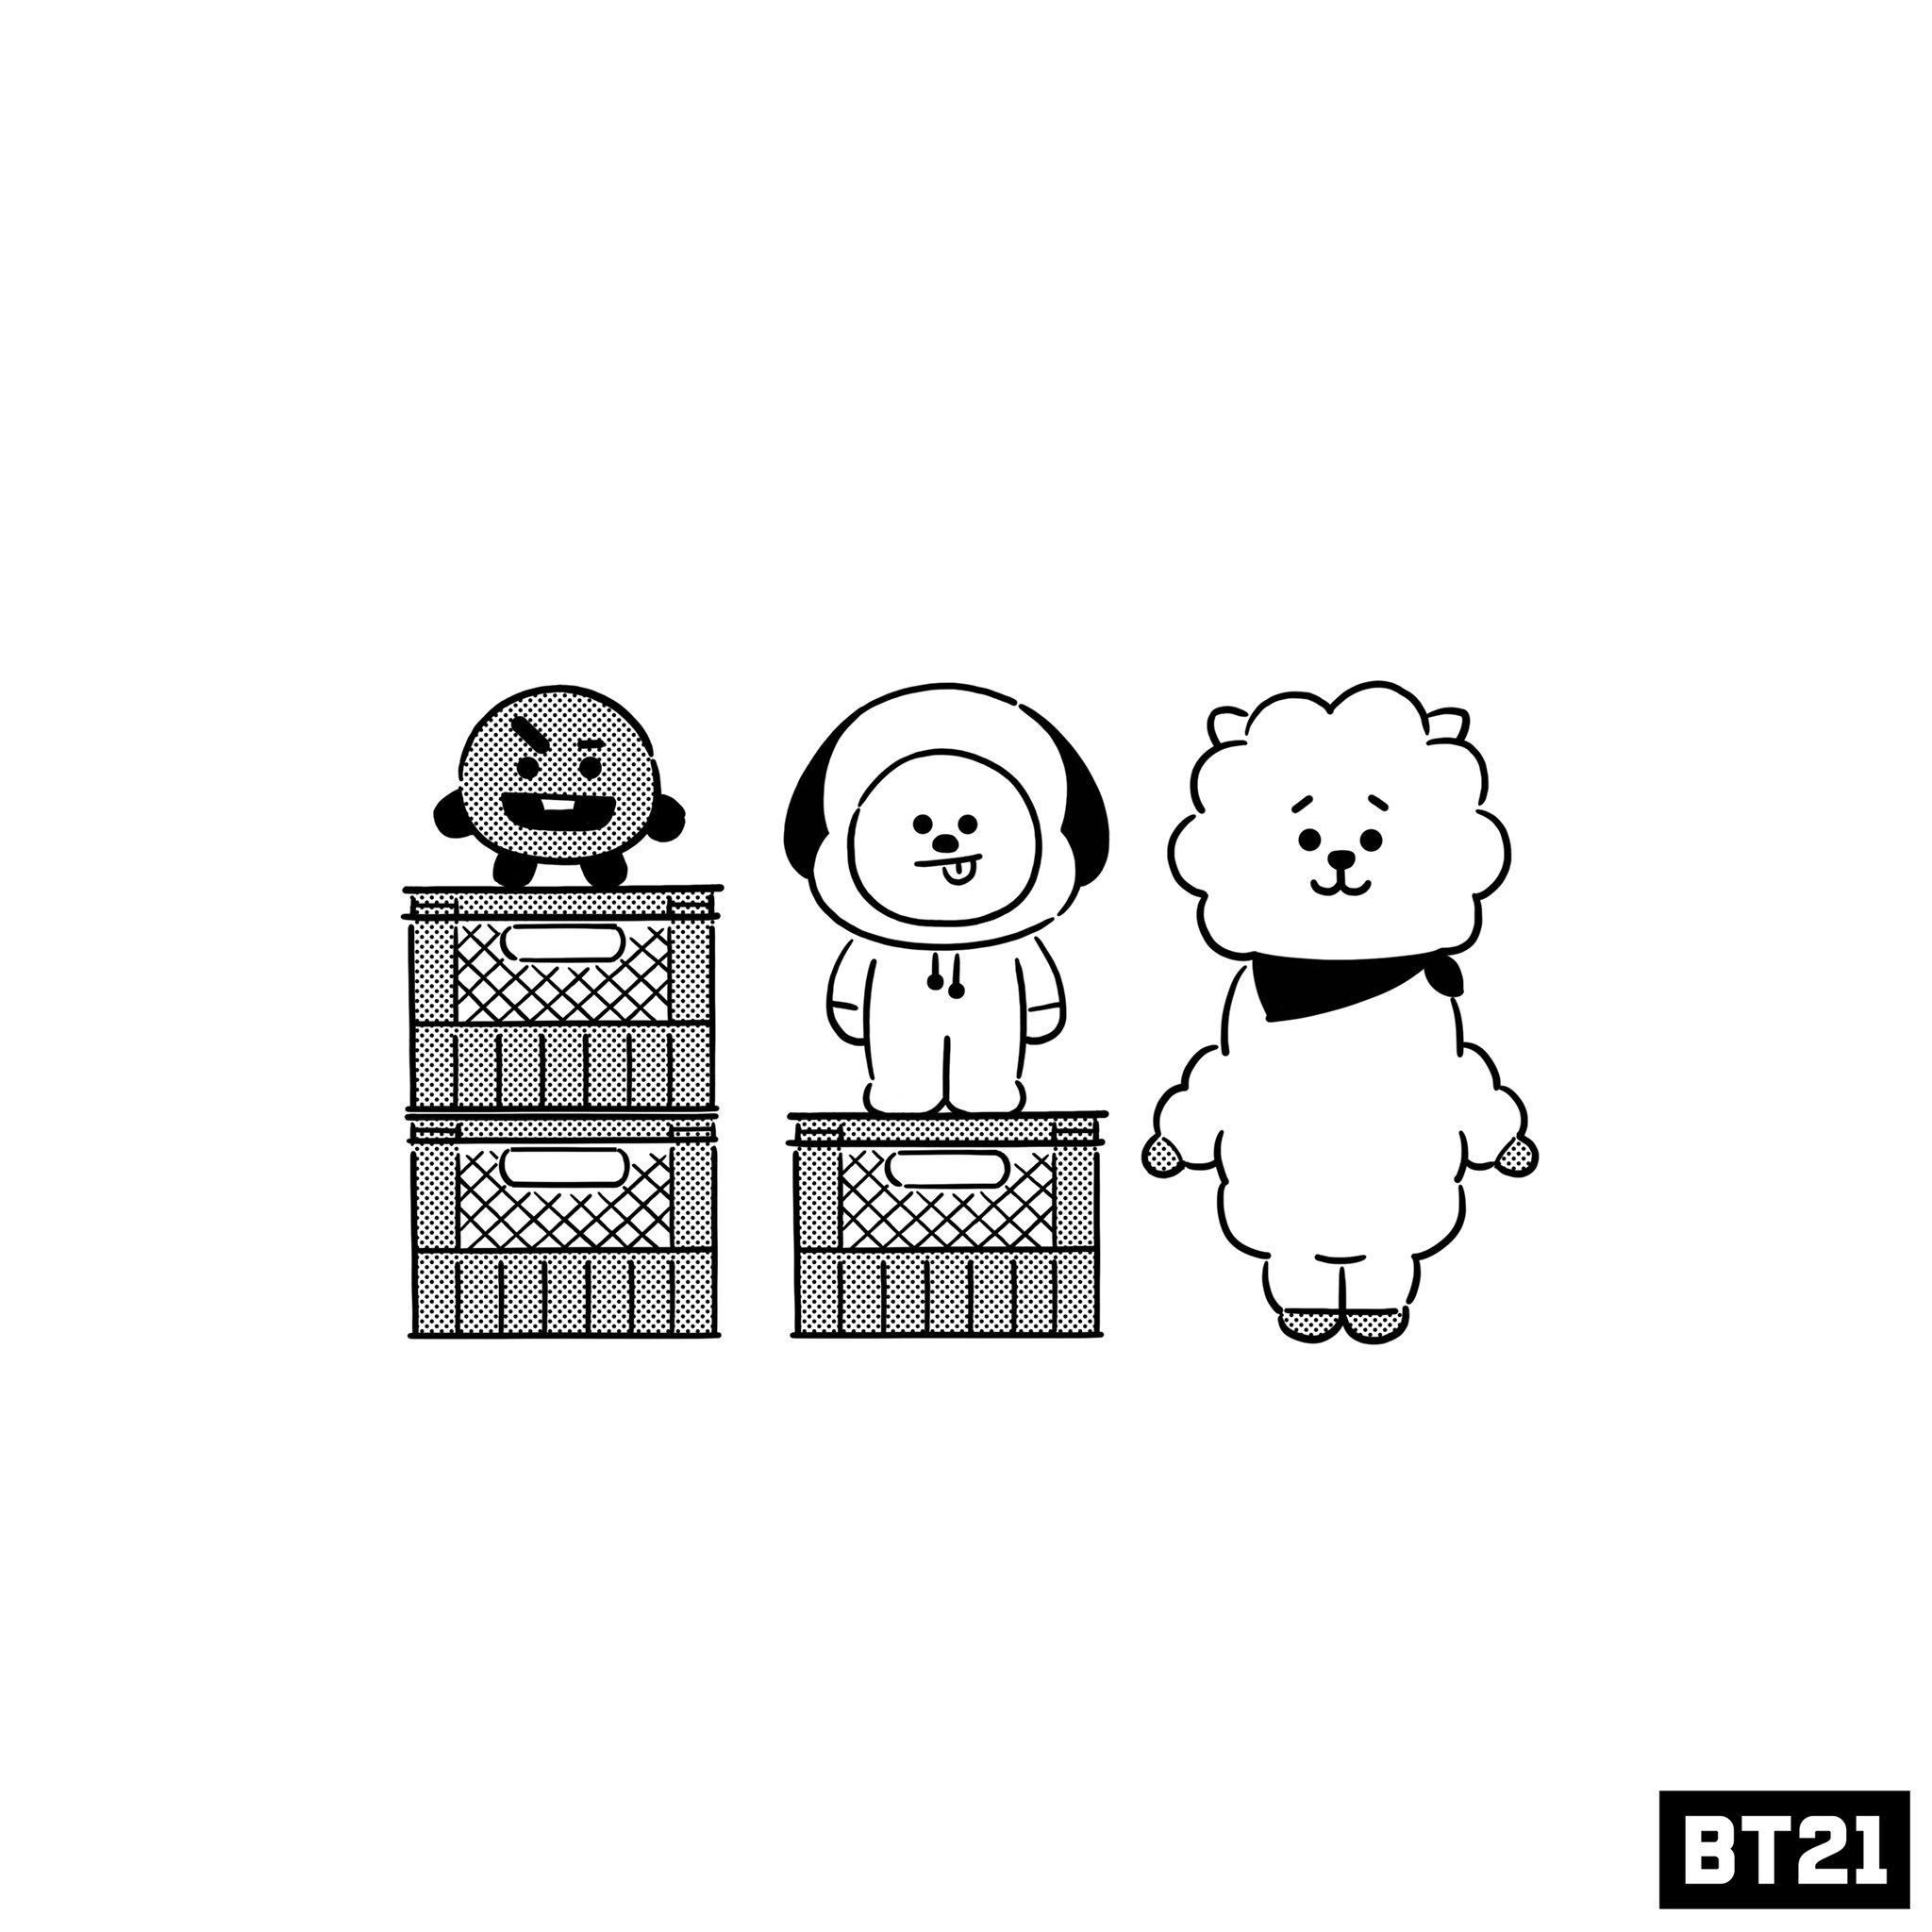 Find This Pin And More On BT21 By Cristinamor2955